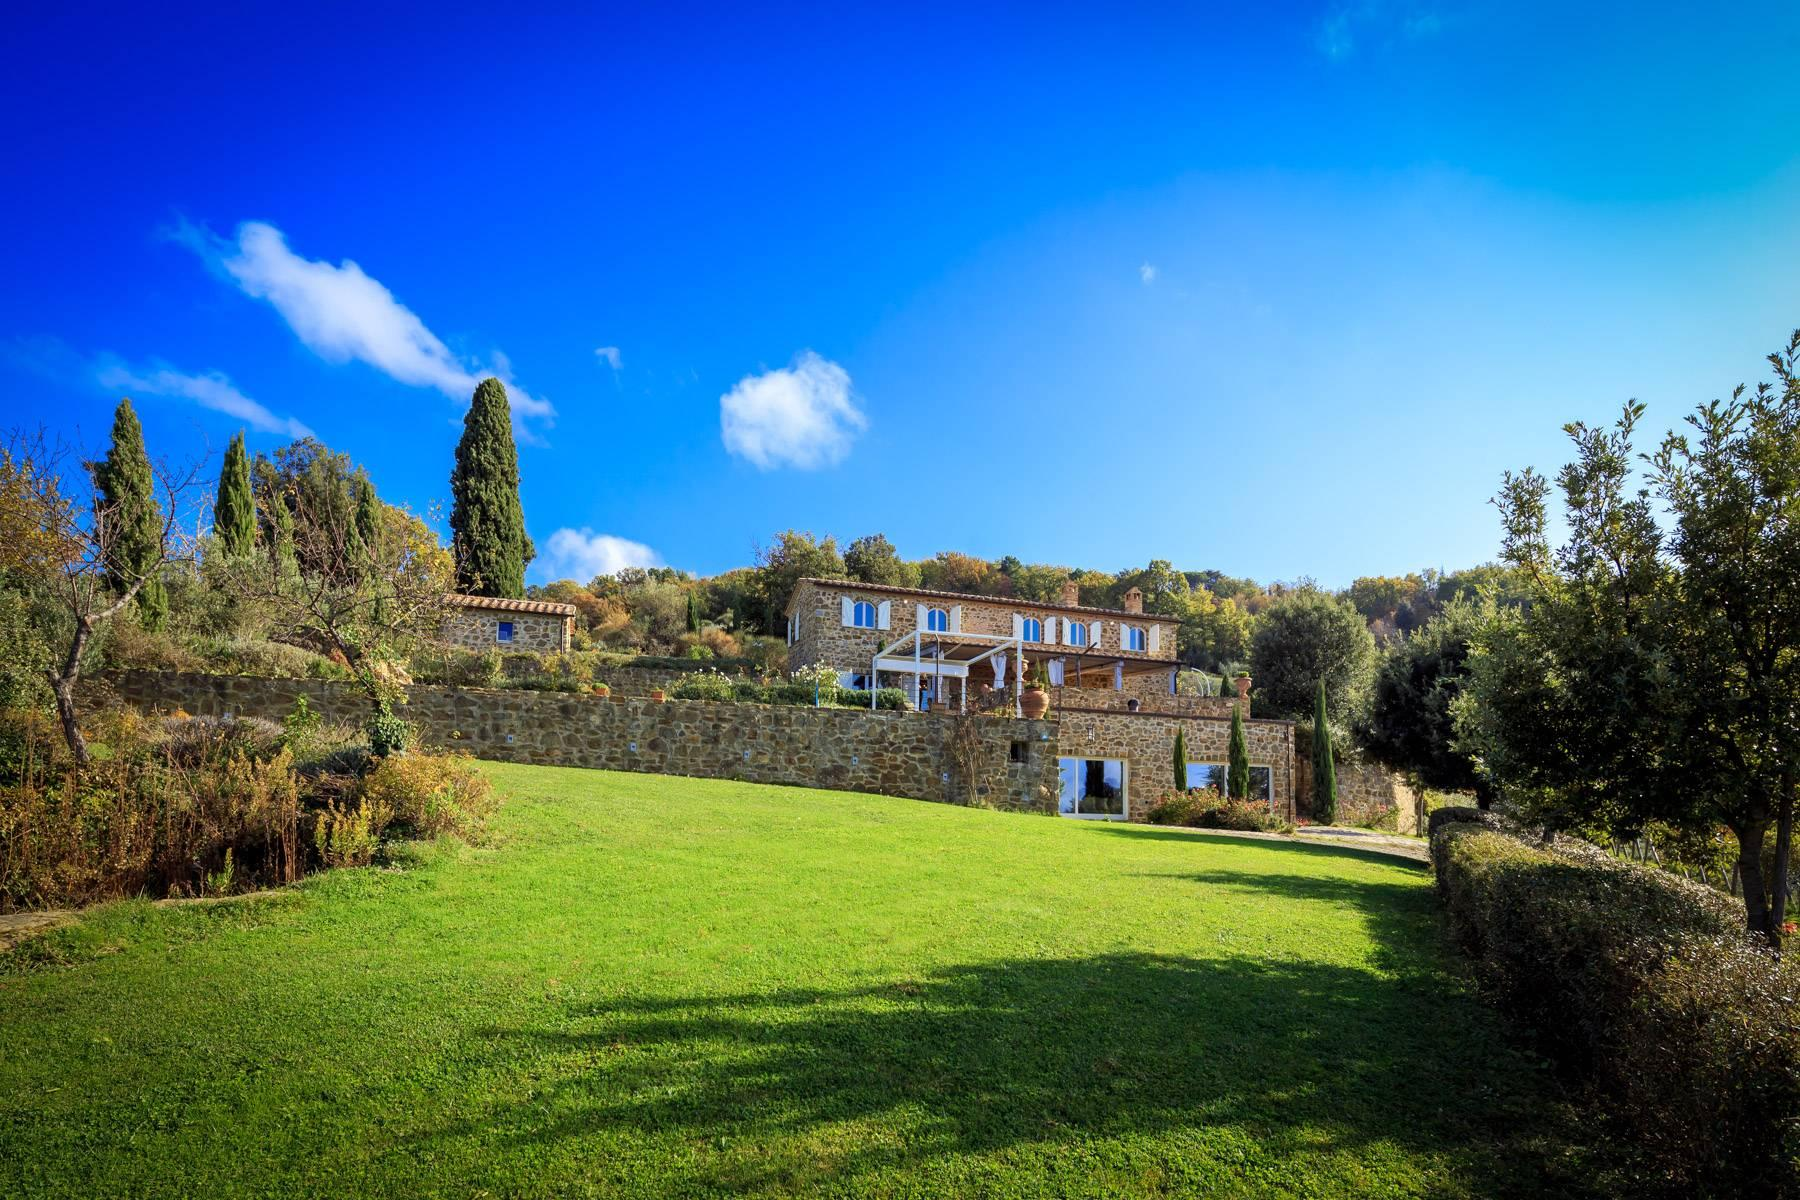 Marvelous newly restored farmhouse close to Montalcino - 1